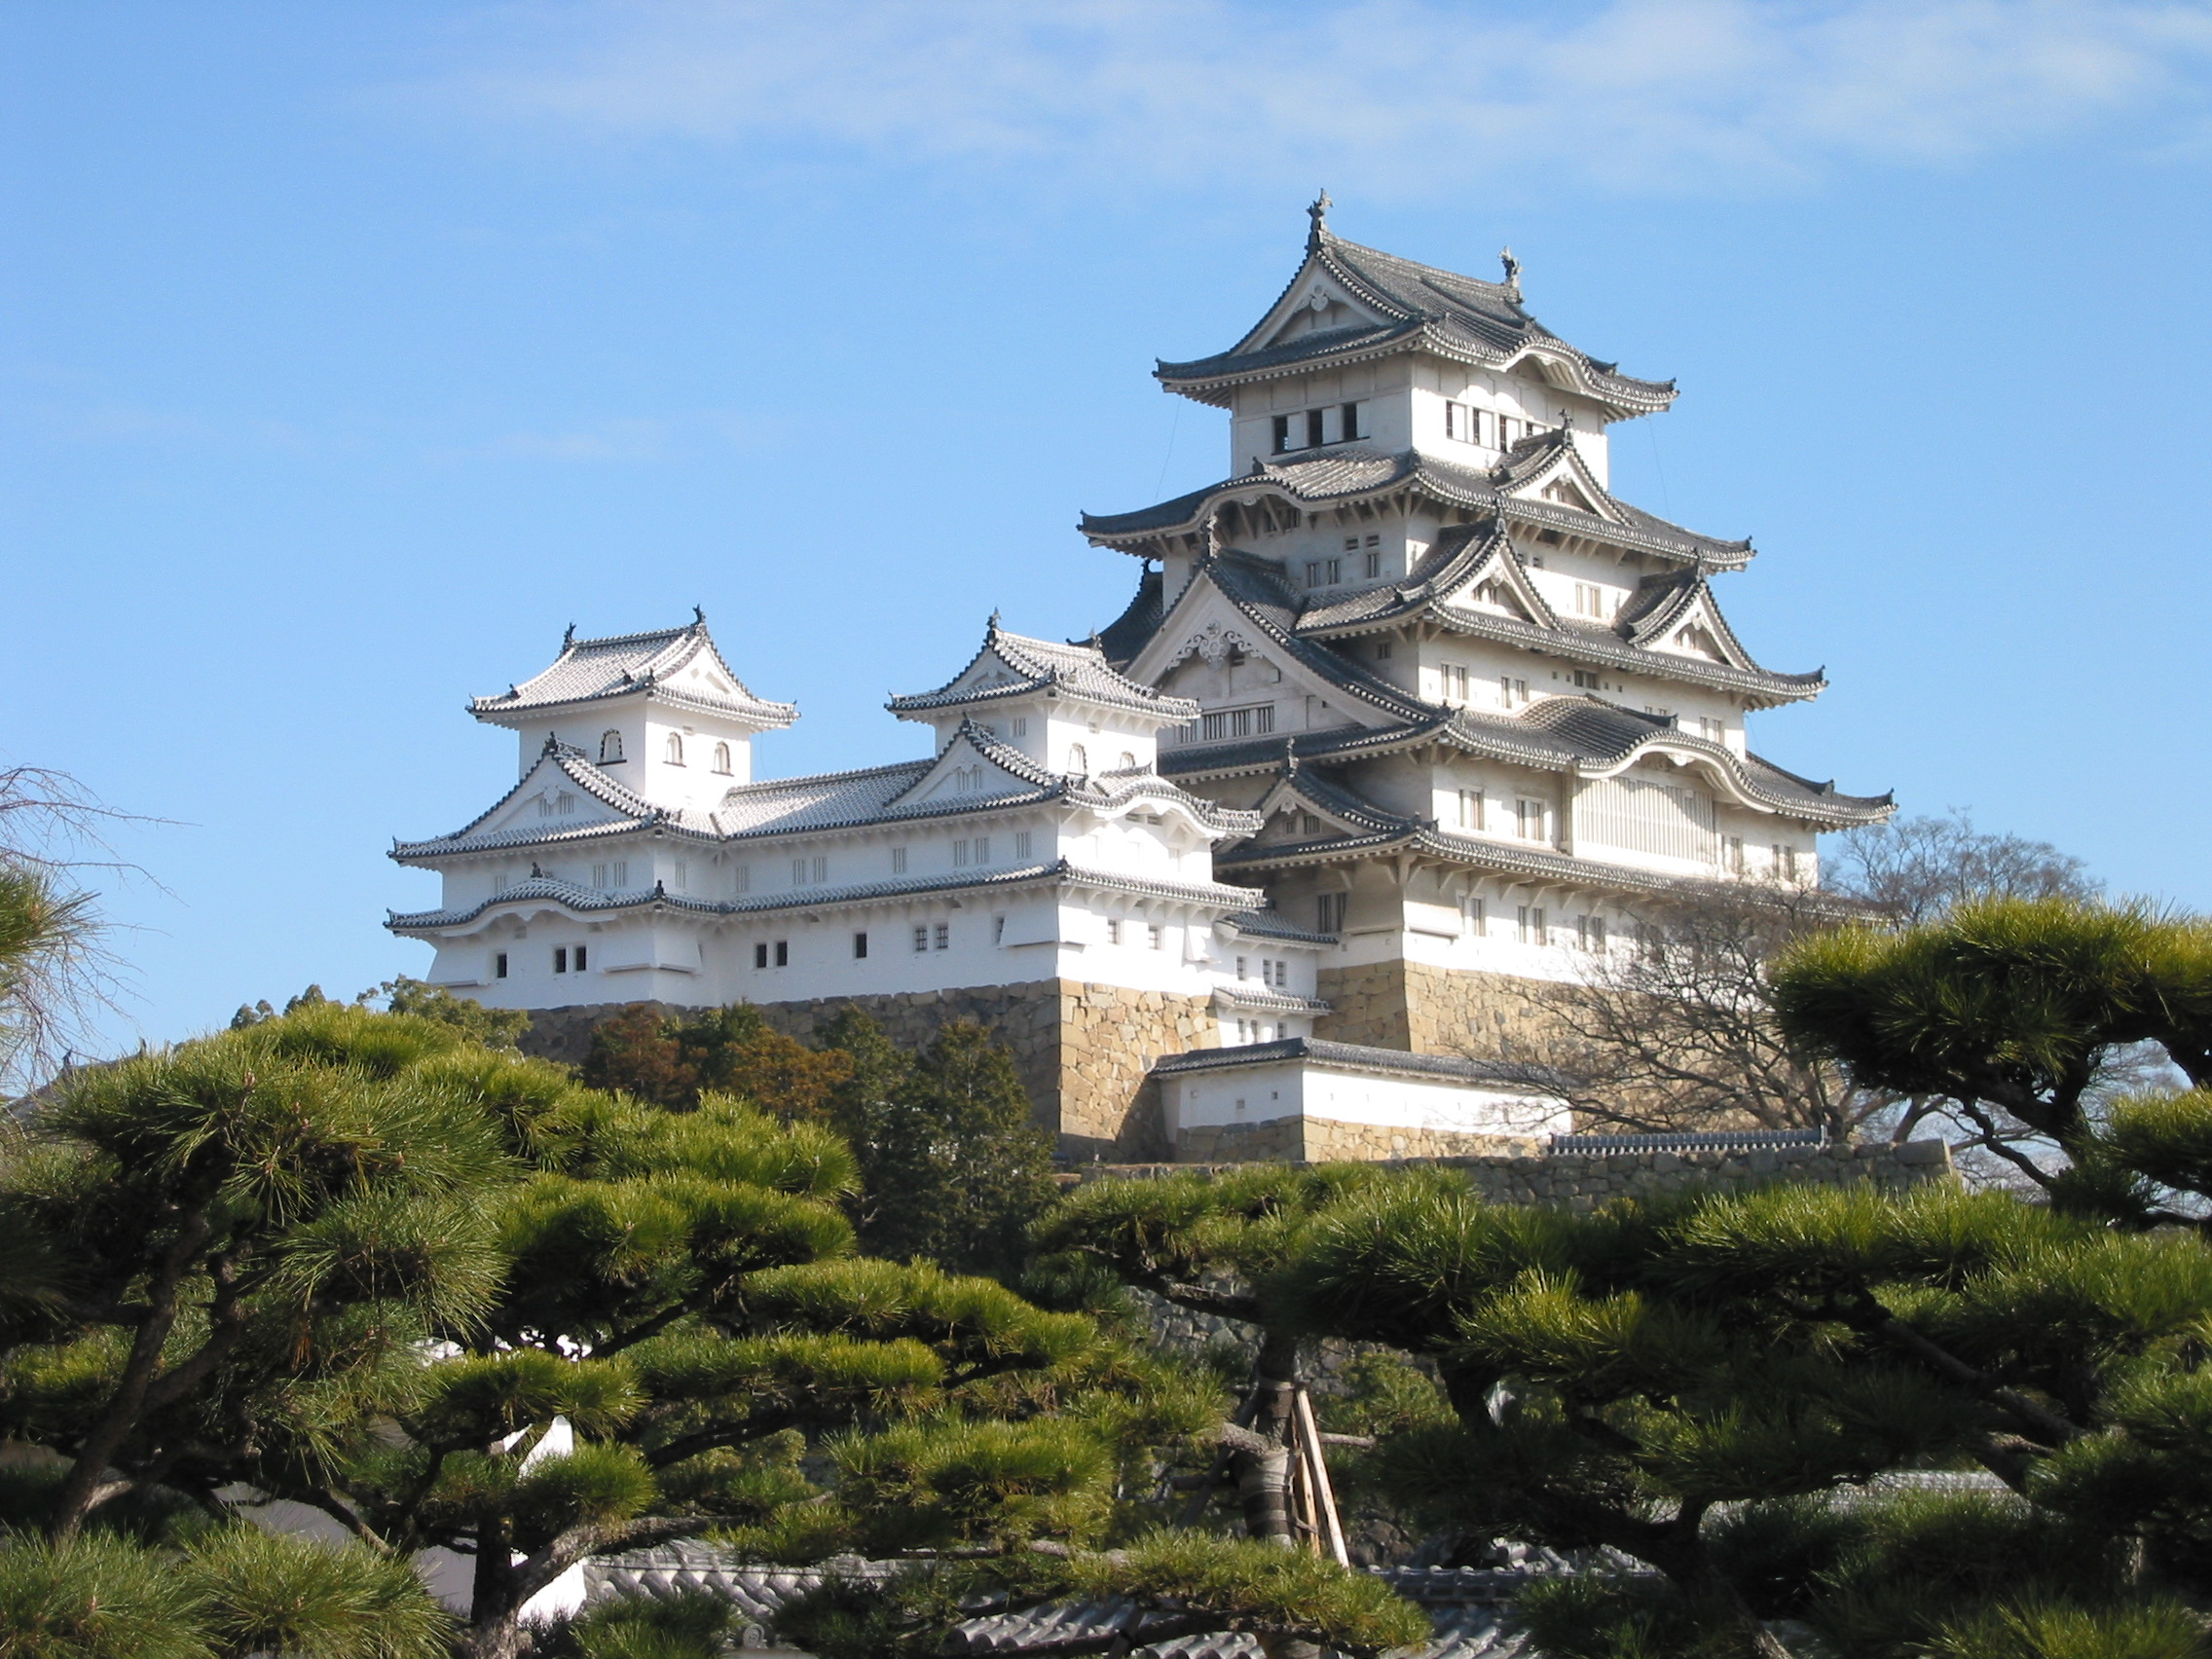 https://upload.wikimedia.org/wikipedia/commons/3/35/Himeji_Castle_The_Keep_Towers.jpg